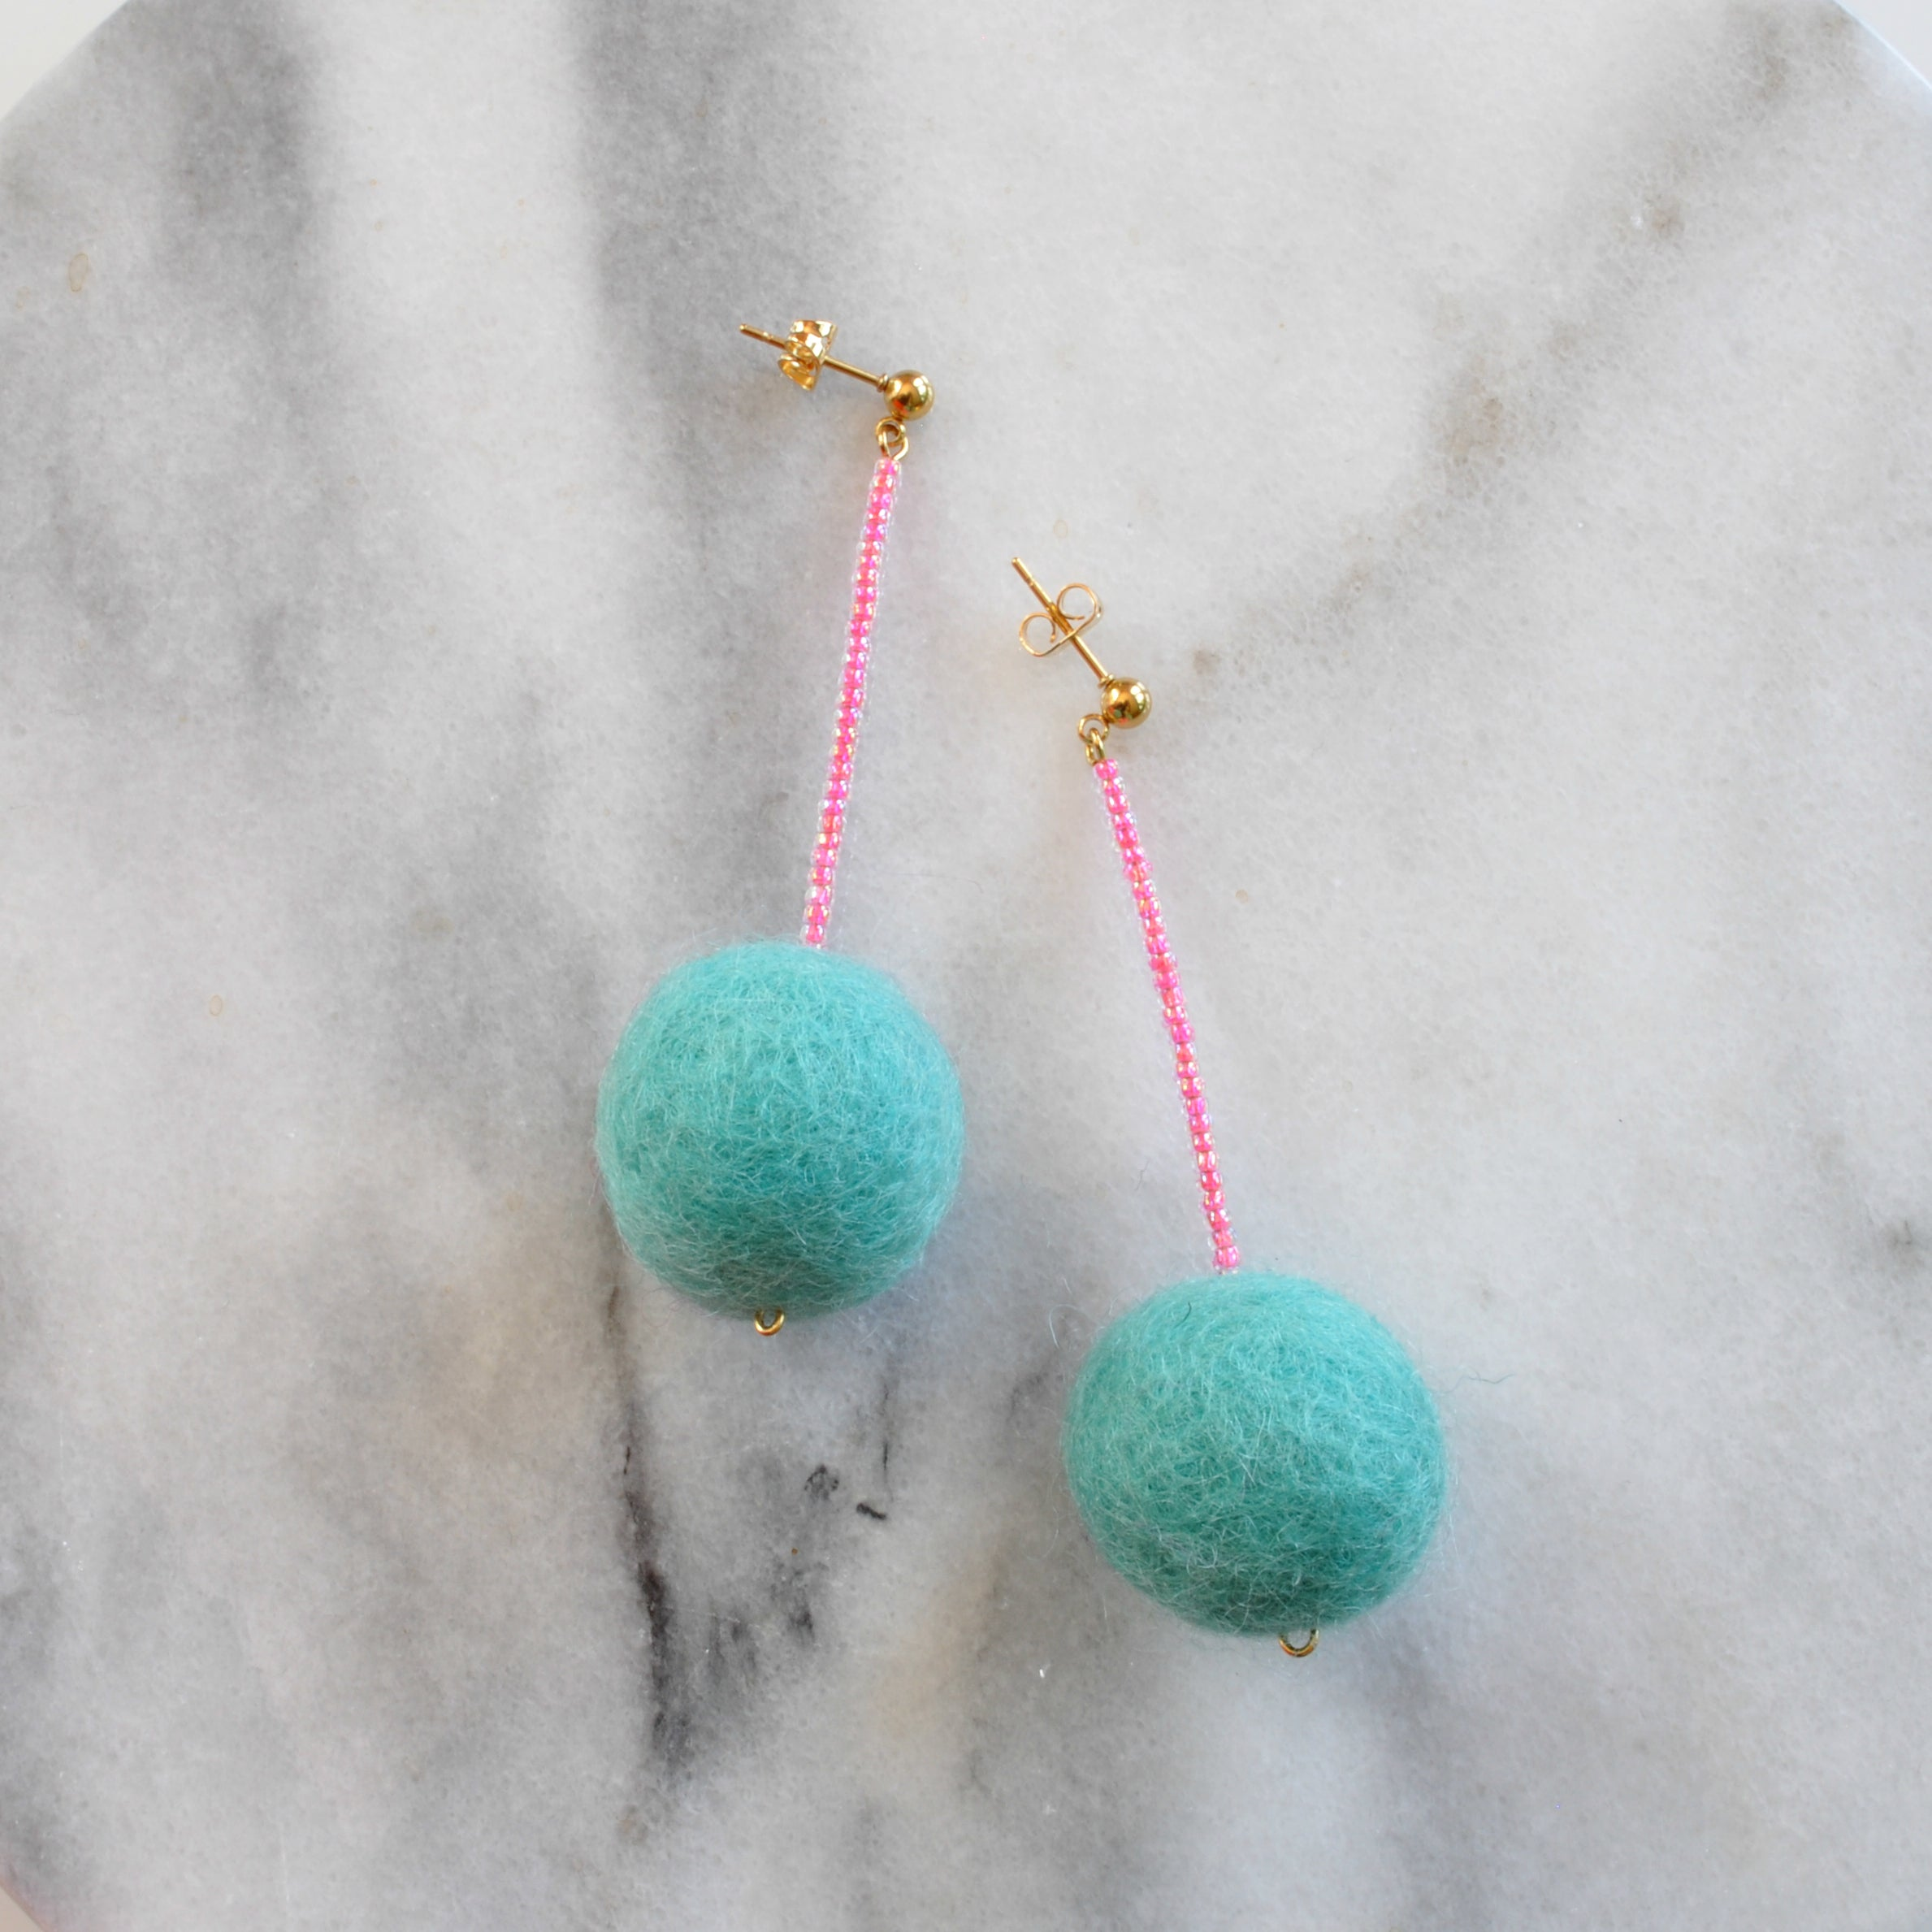 Libby & Smee pom pom earrings in Aqua with Neon Pink color  combination